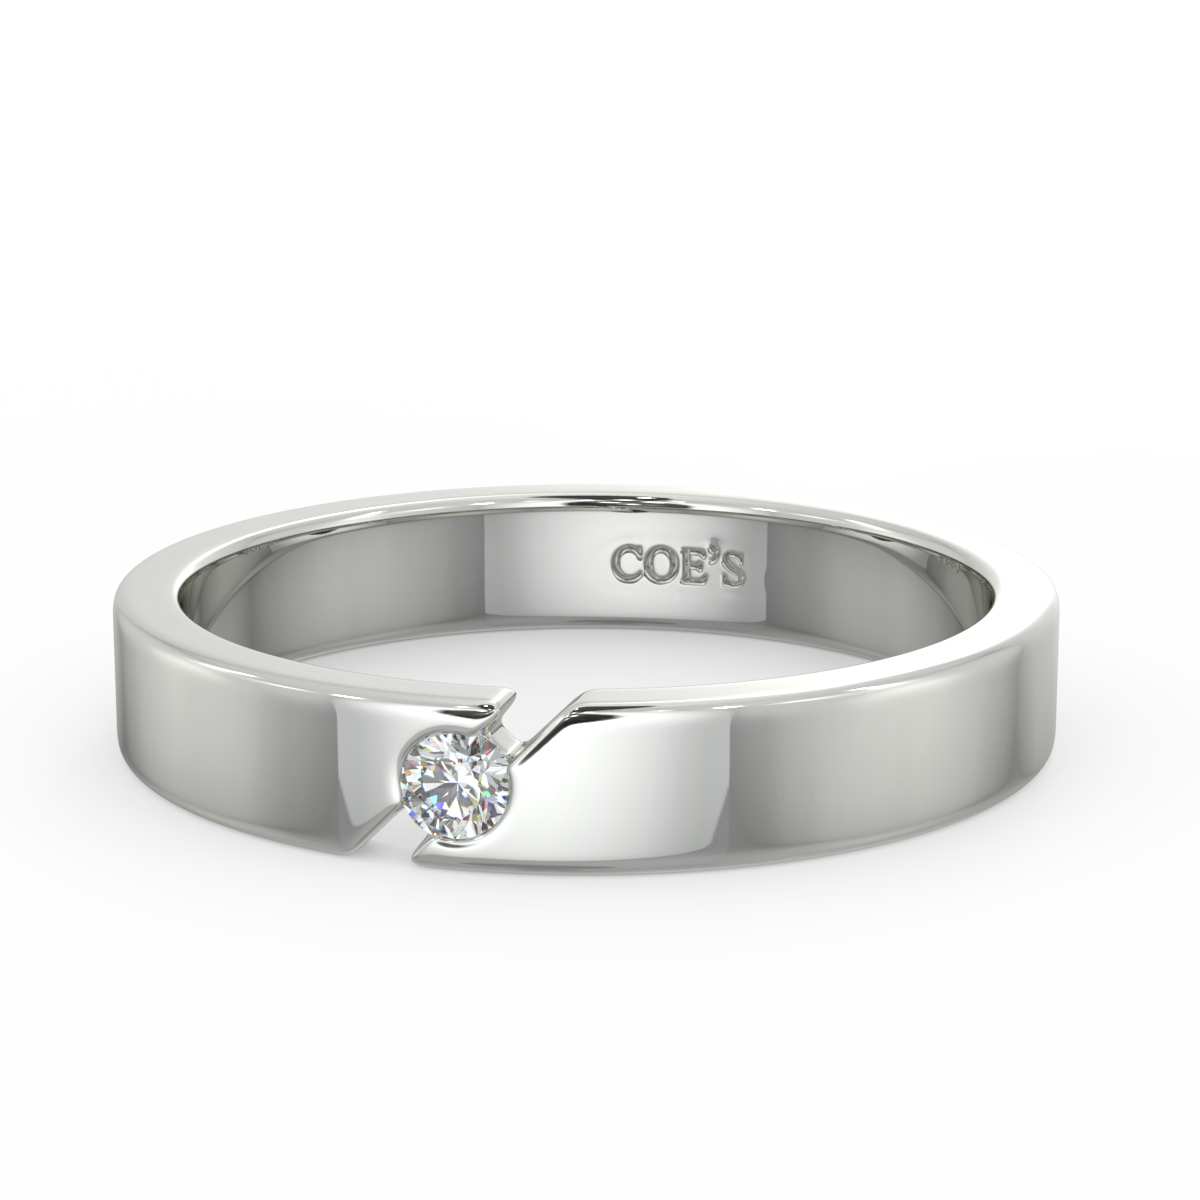 Christopher - Mens diamond set wedding band